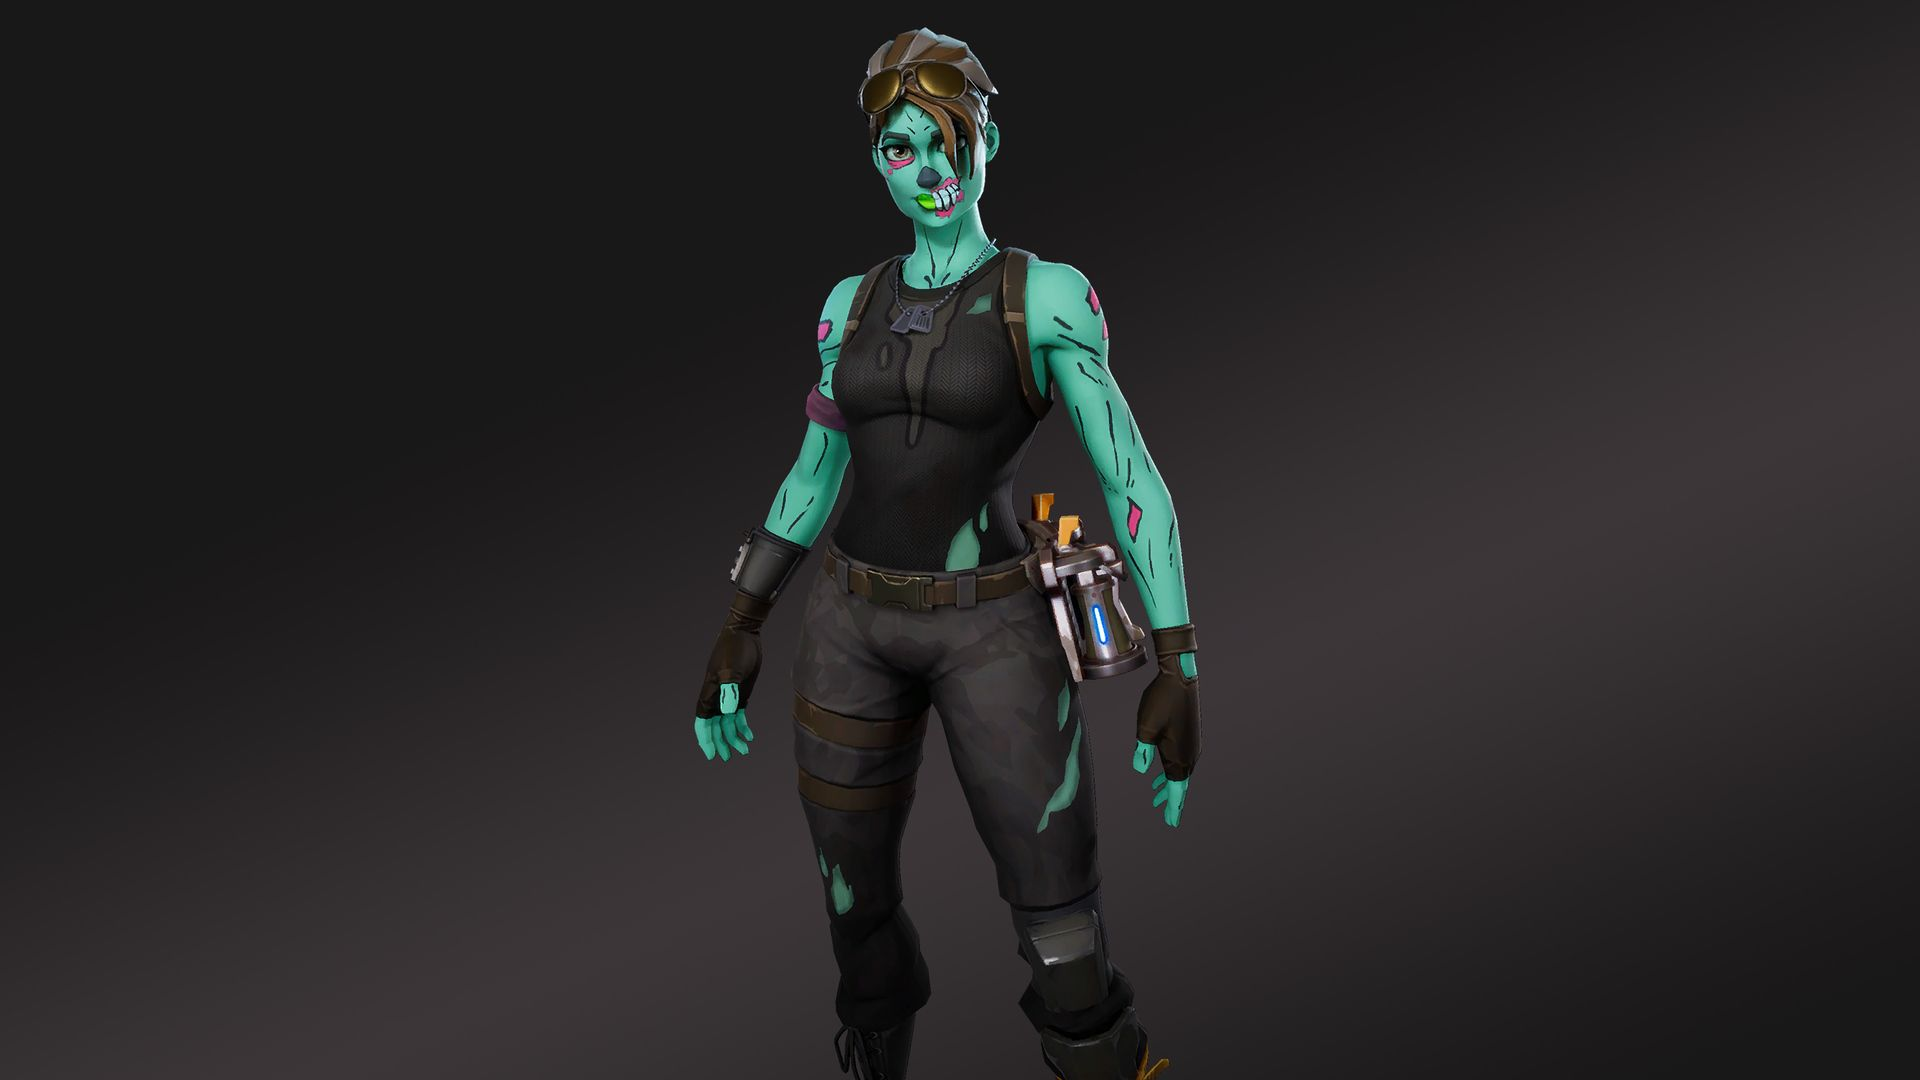 1920x1080 Hd Wallpaper Of Ghoul Trooper Fortnite Battle Royale Video Game Ghoul Trooper Battle Royale Game Trooper